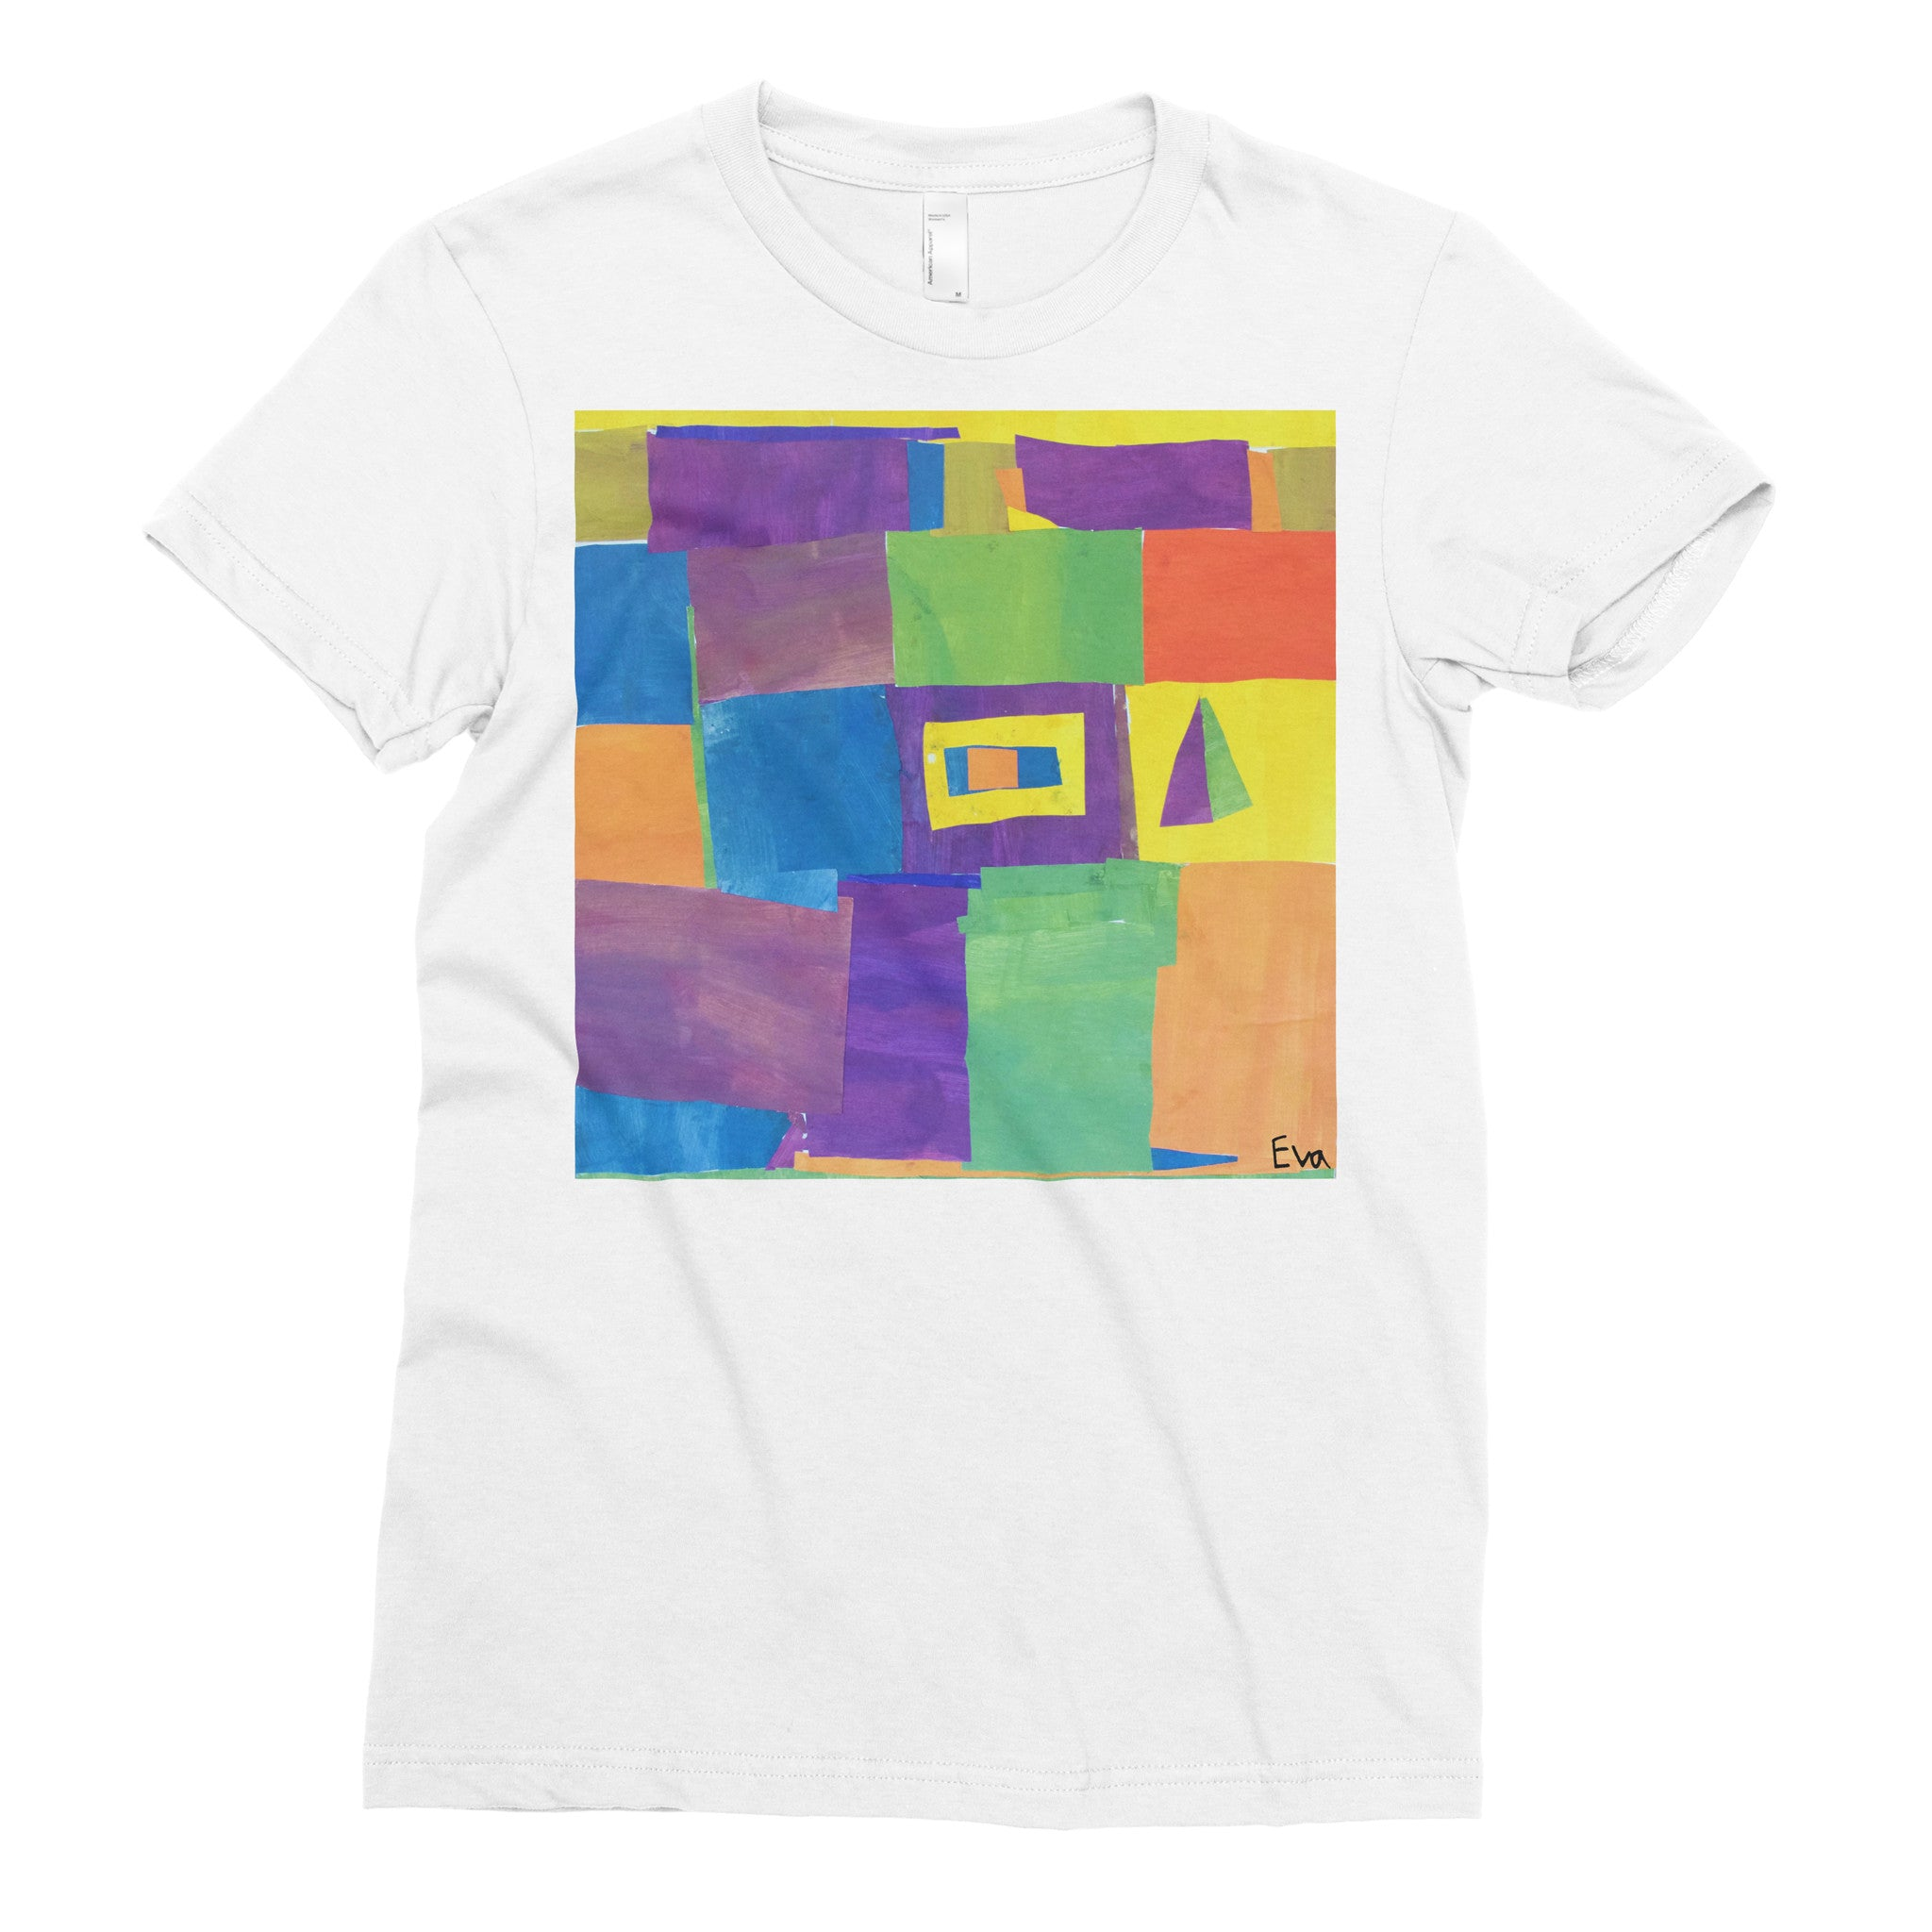 Eva, 4th grade - Adult T-shirt - Rightside Shirts - 1